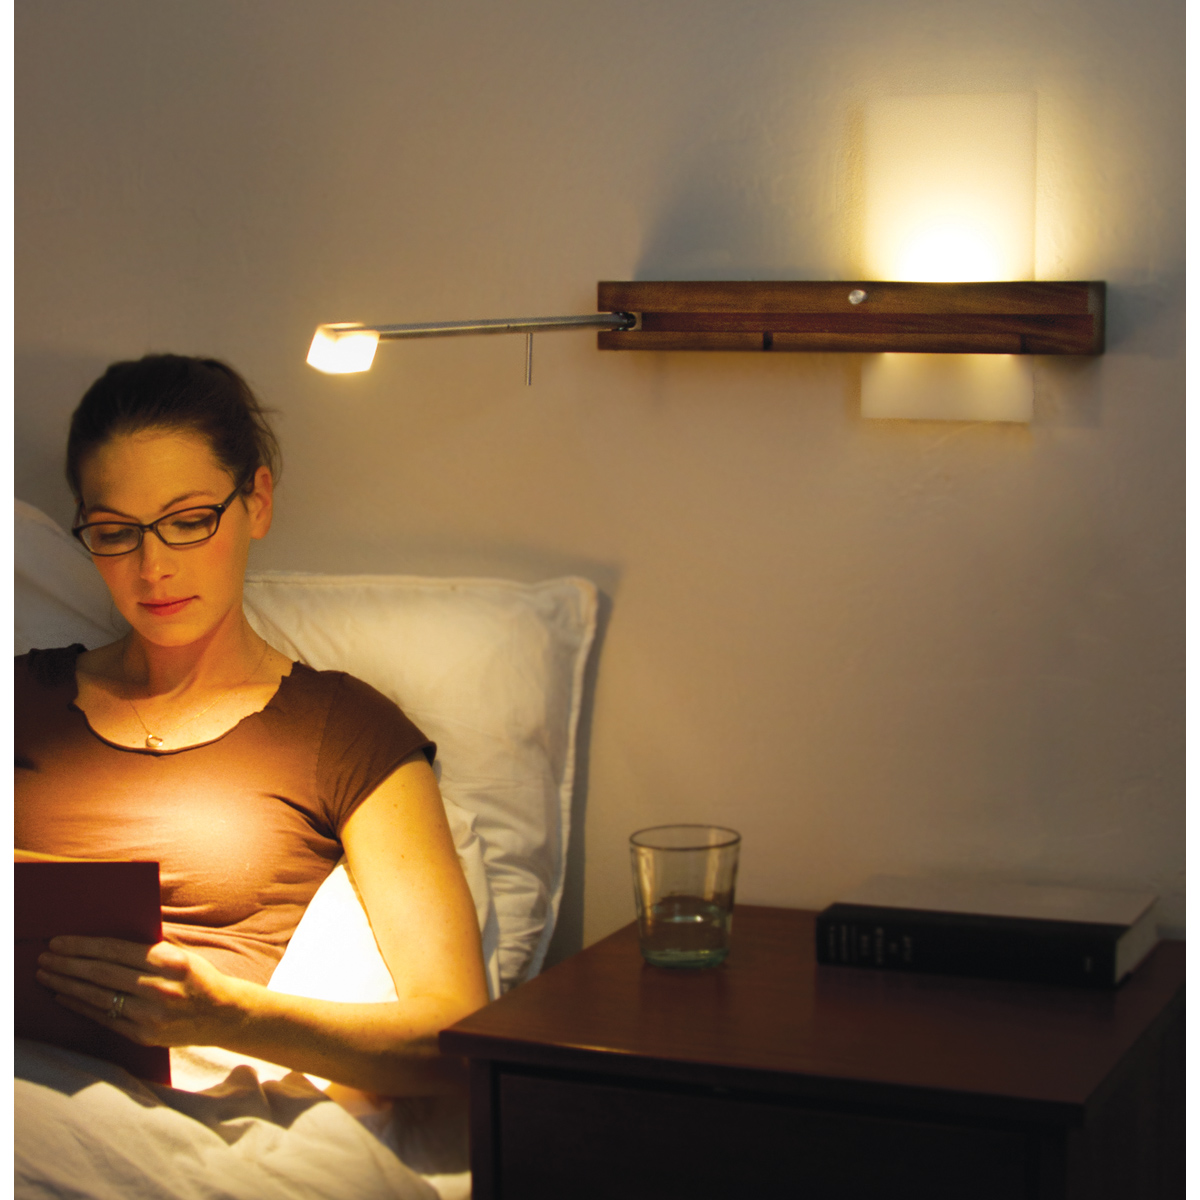 Table lamps for reading in bed - Size